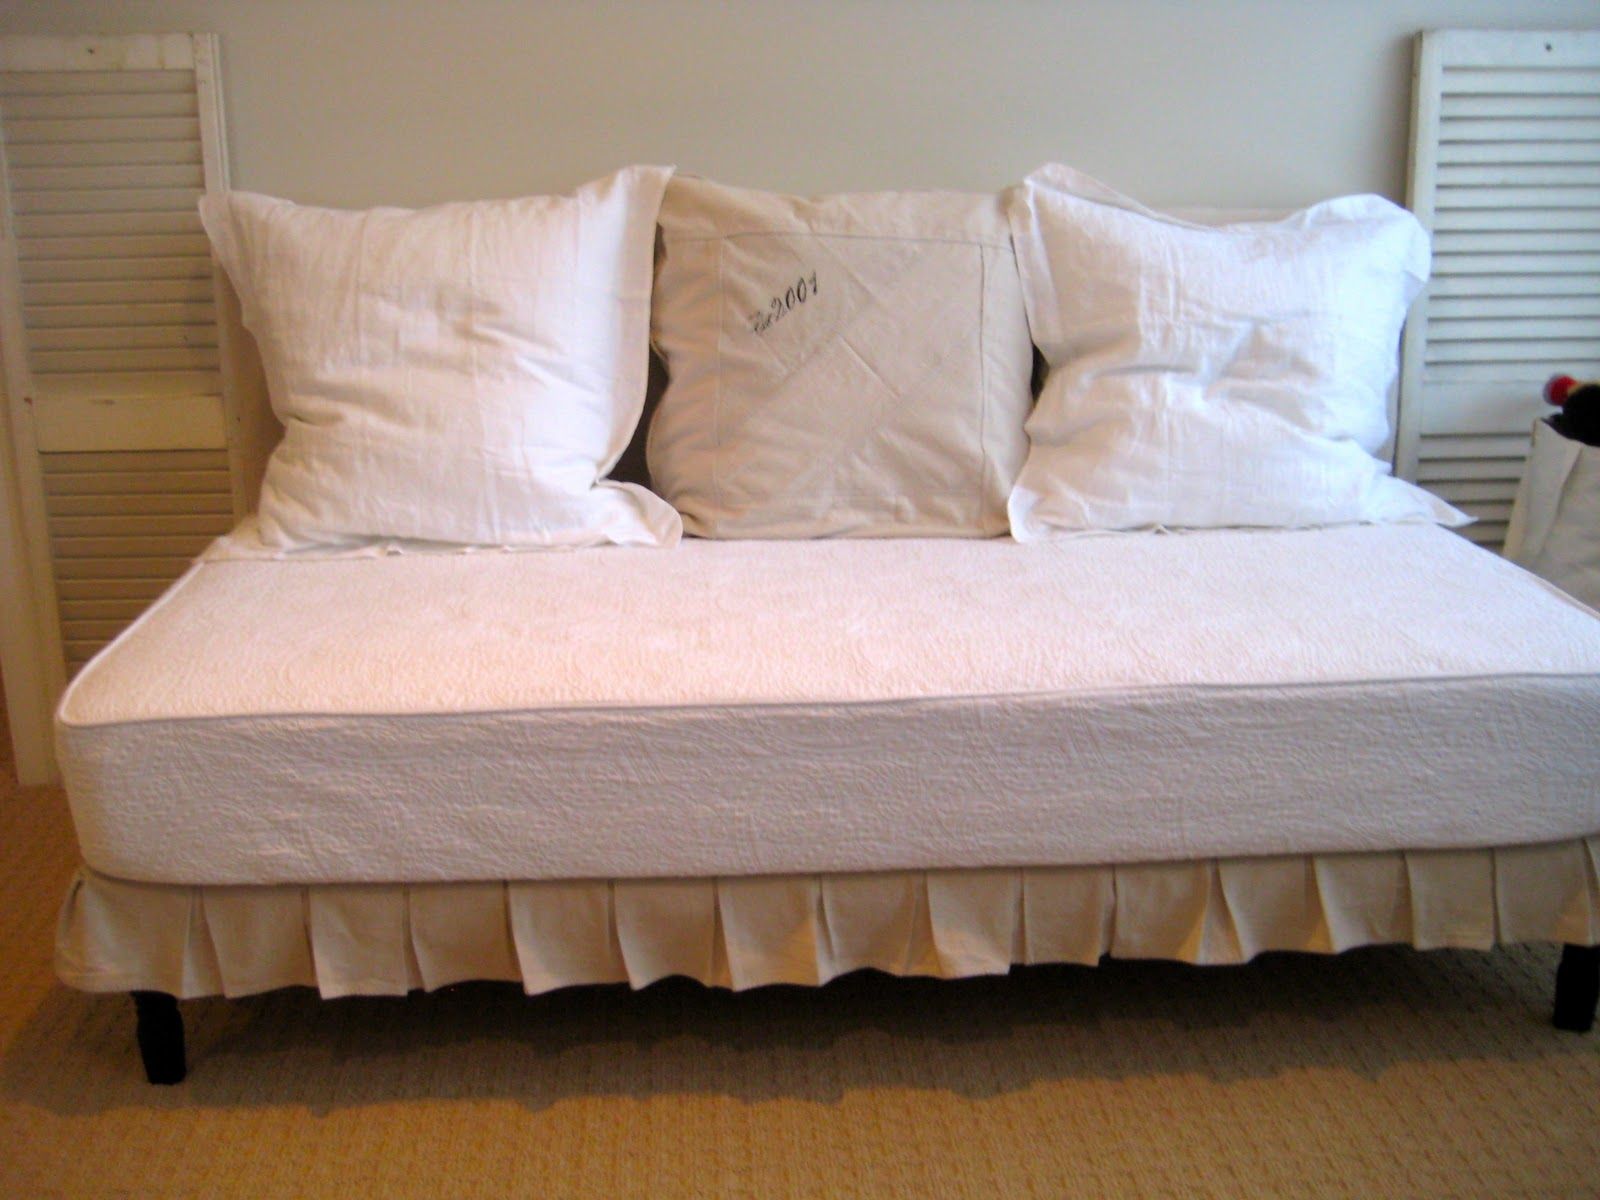 Daybed Cushions | Custom Daybed Cushions | Mattress for Daybed Sizes